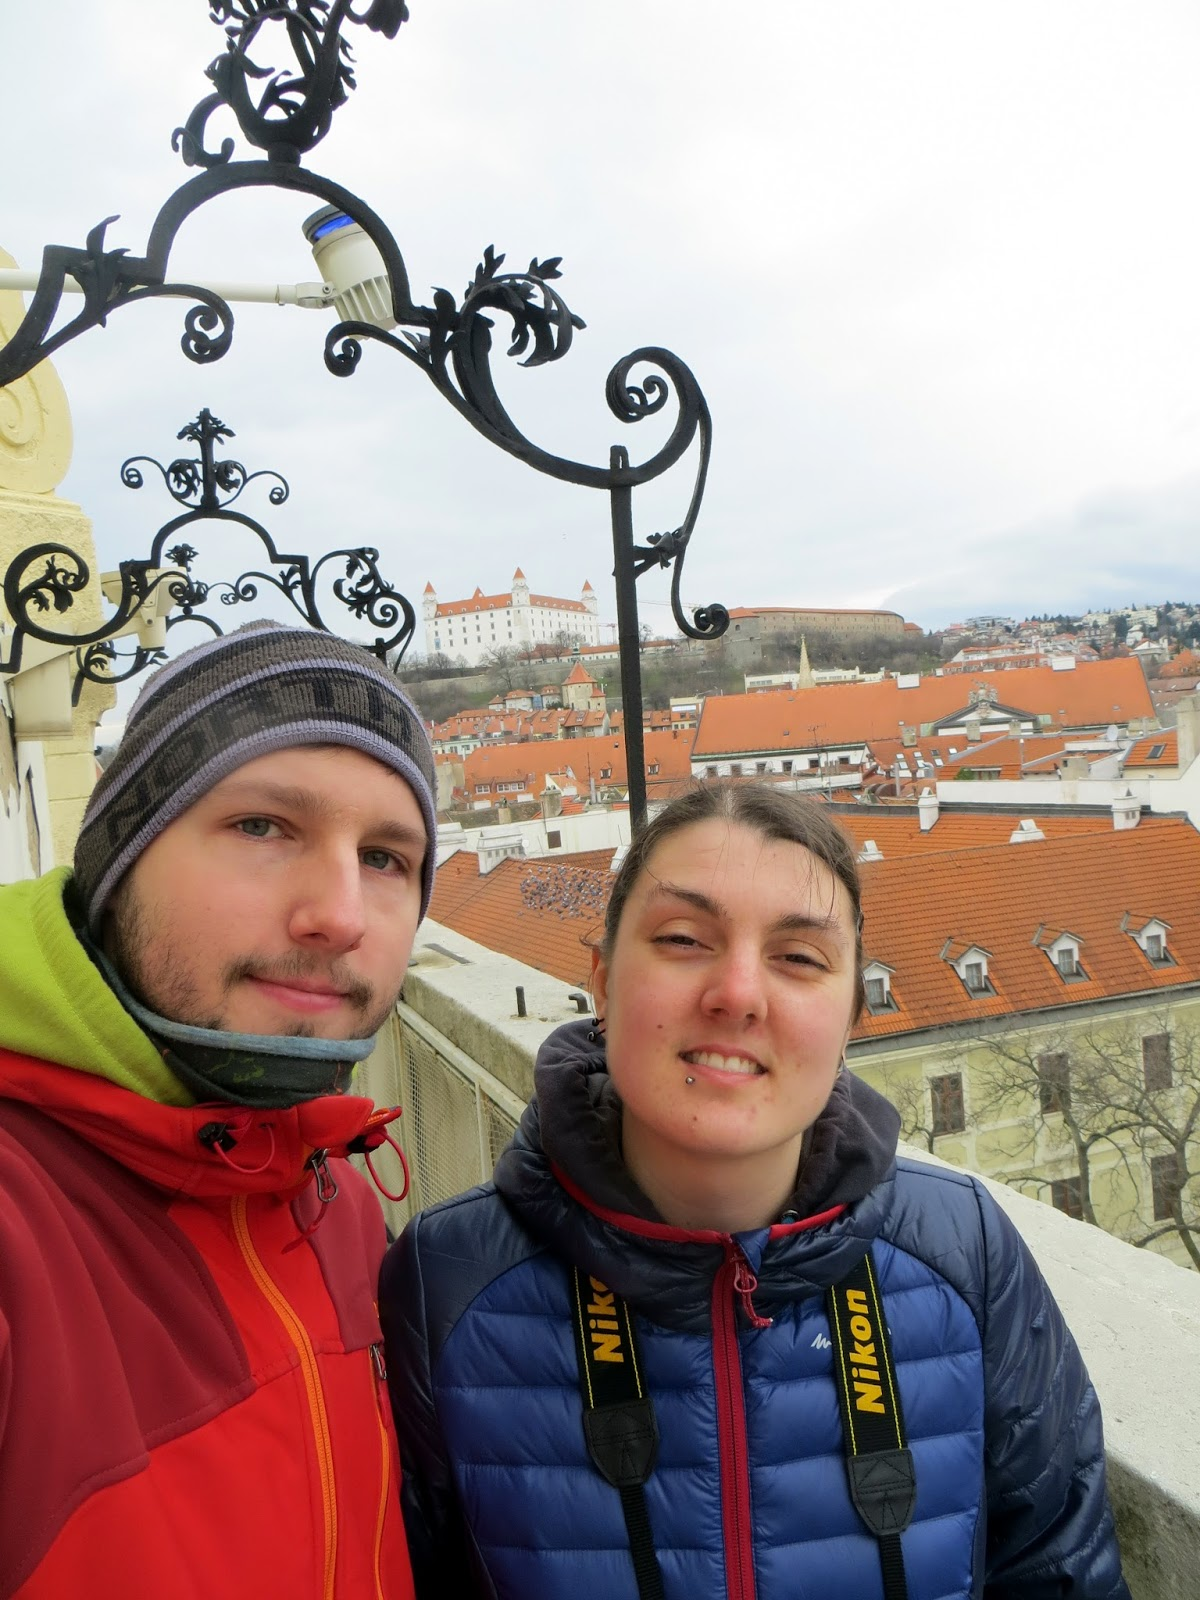 Slovakia, Bratislava, off the beaten track, eastern europe, eu, historical city, on the danube, ufo, bridge, communist